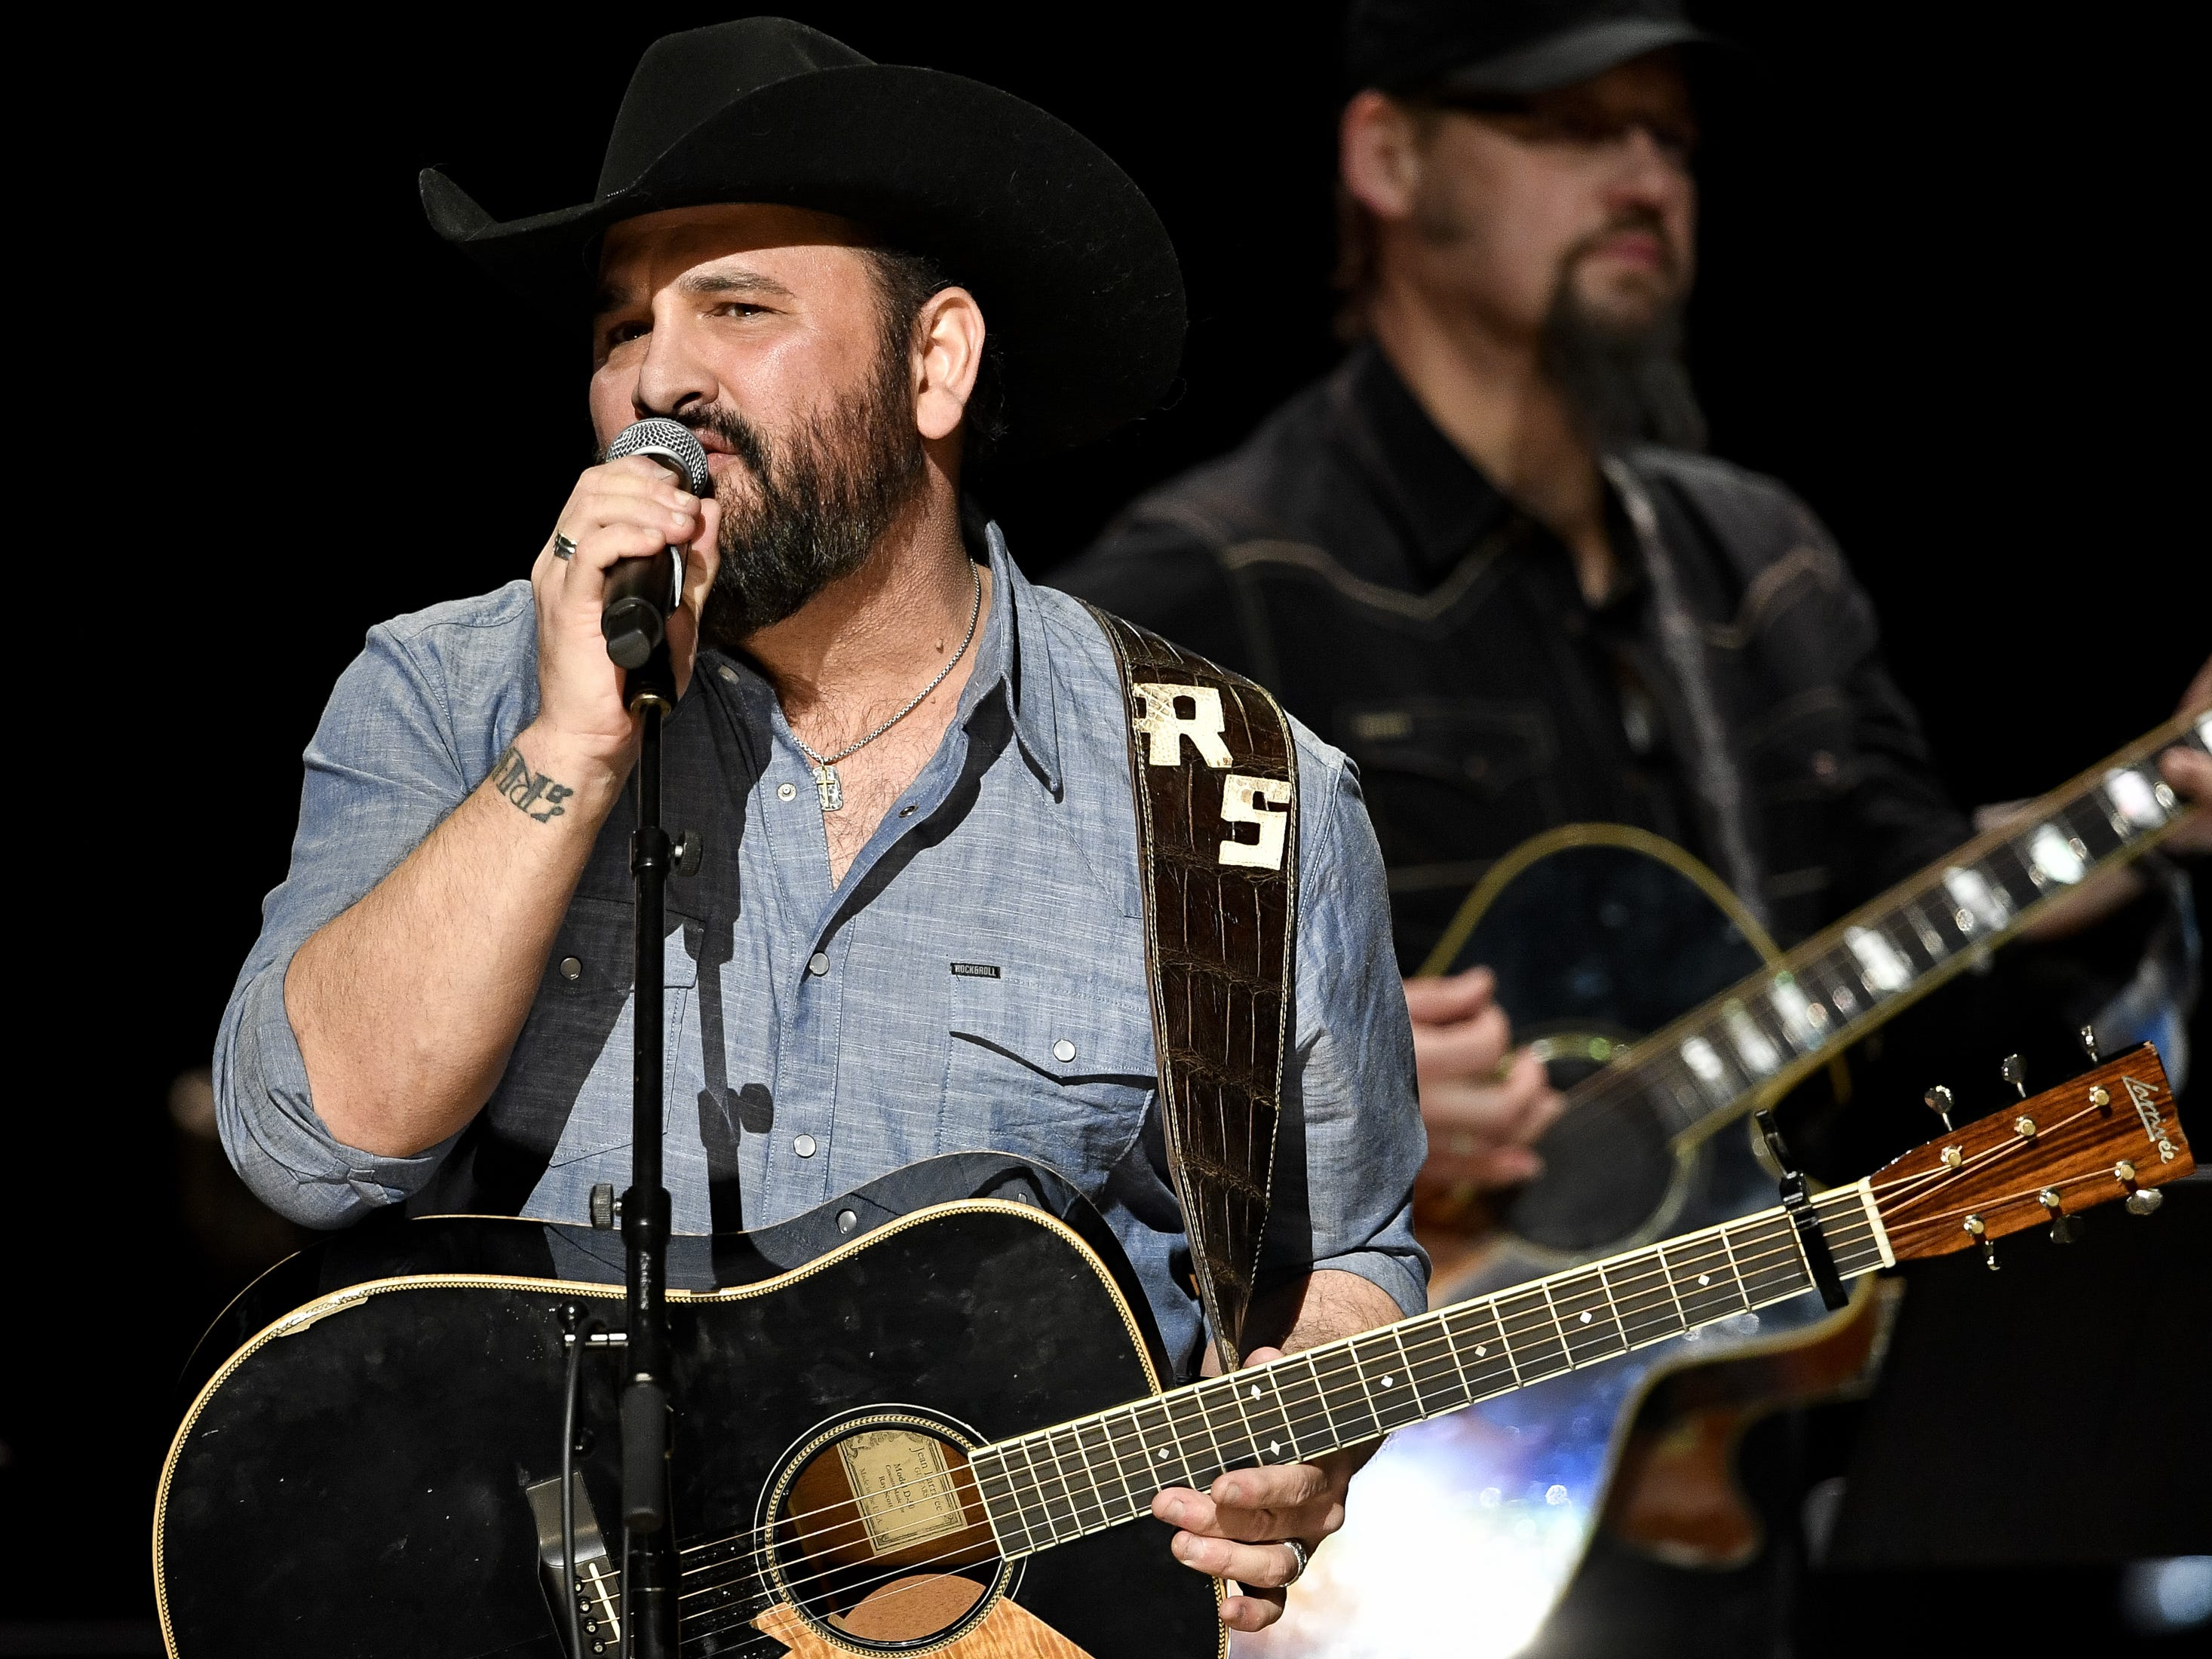 Ray Scott is scheduled to play the Budweiser Forever Country Stage at CMA Fest 2019.